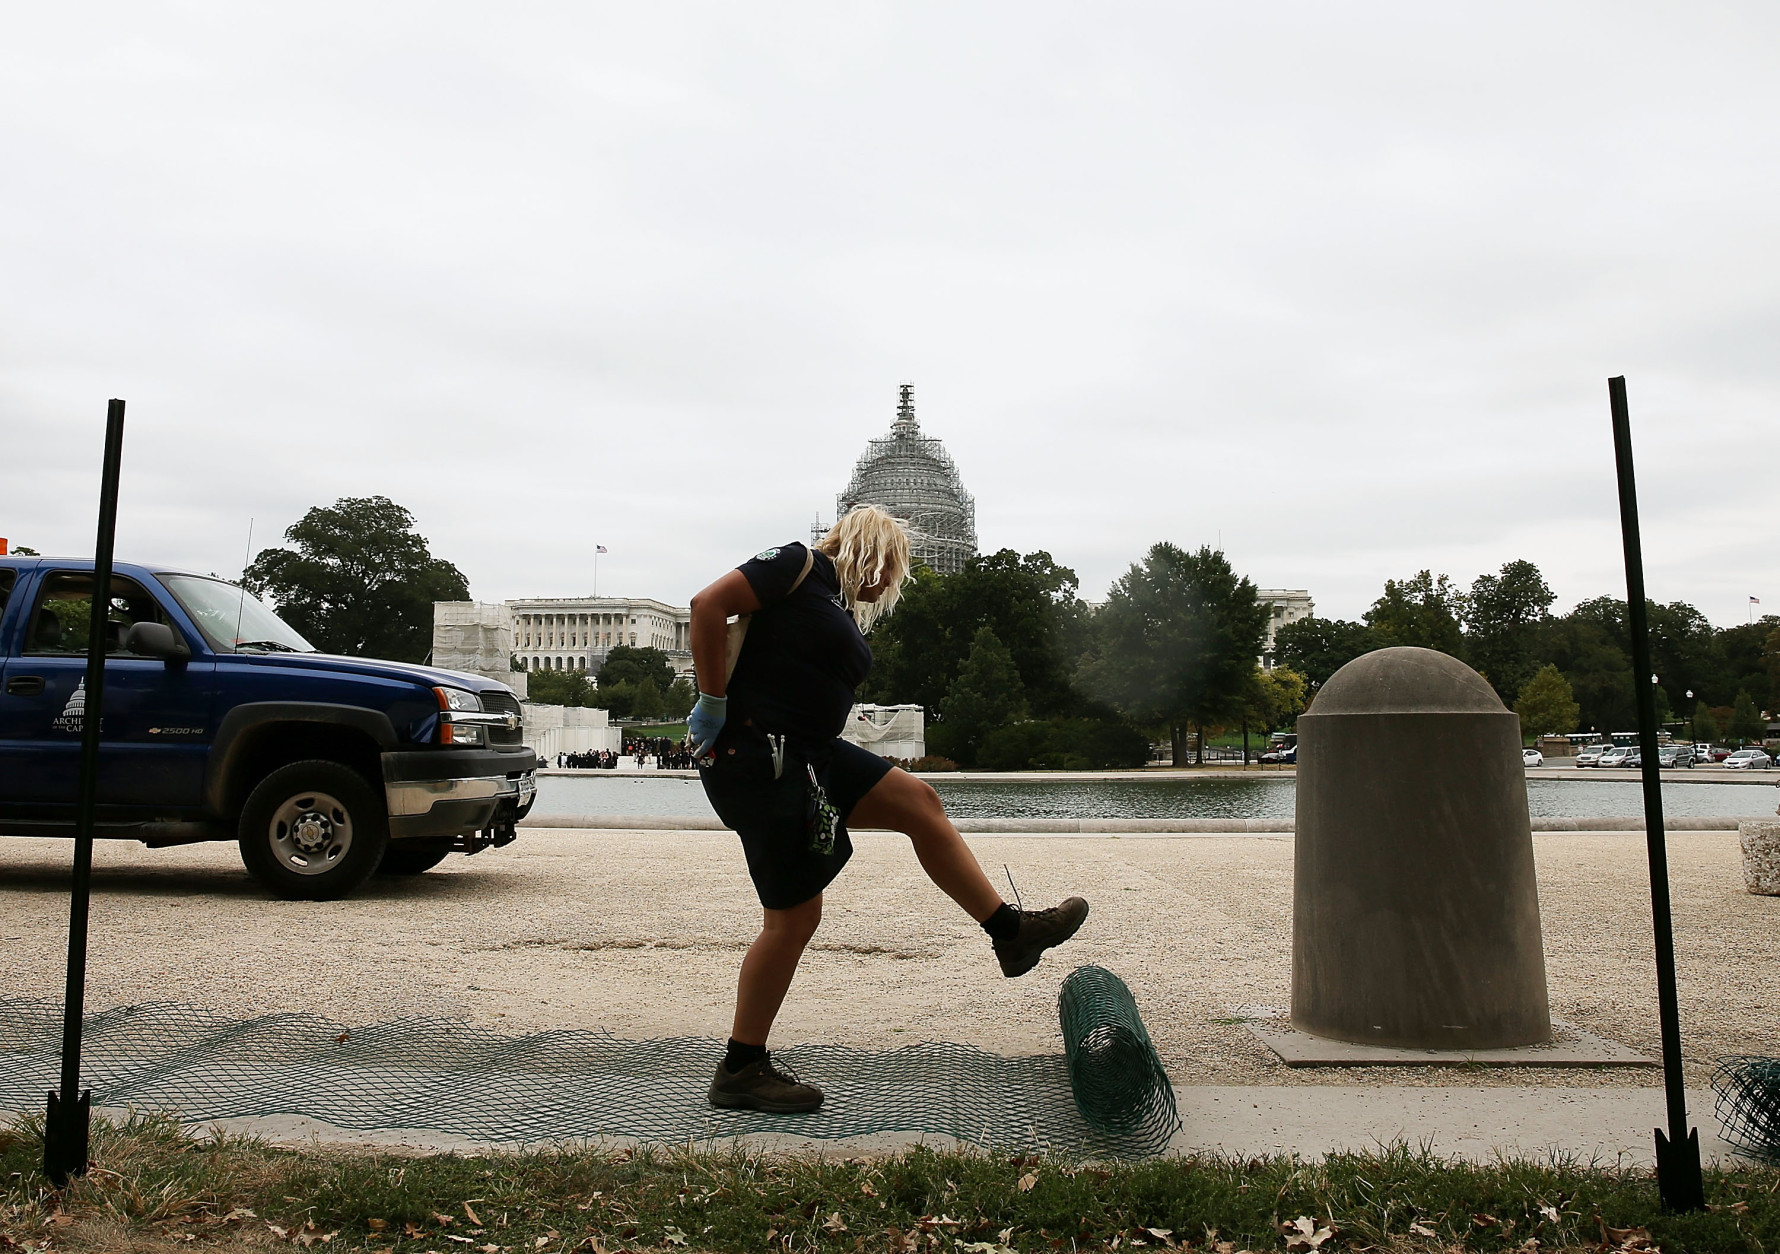 WASHINGTON, DC - SEPTEMBER 21: US Capitol grounds worker Lisa Gray unrolls crowd control fencing to be installed in preparation of Pope Francis' visit this week, September 21, 2015 in Washington, DC. Pope Francis will arrive in Washington on Tuesday to spend 3 days before he travels on to New York and Philadelphia. (Photo by Mark Wilson/Getty Images)